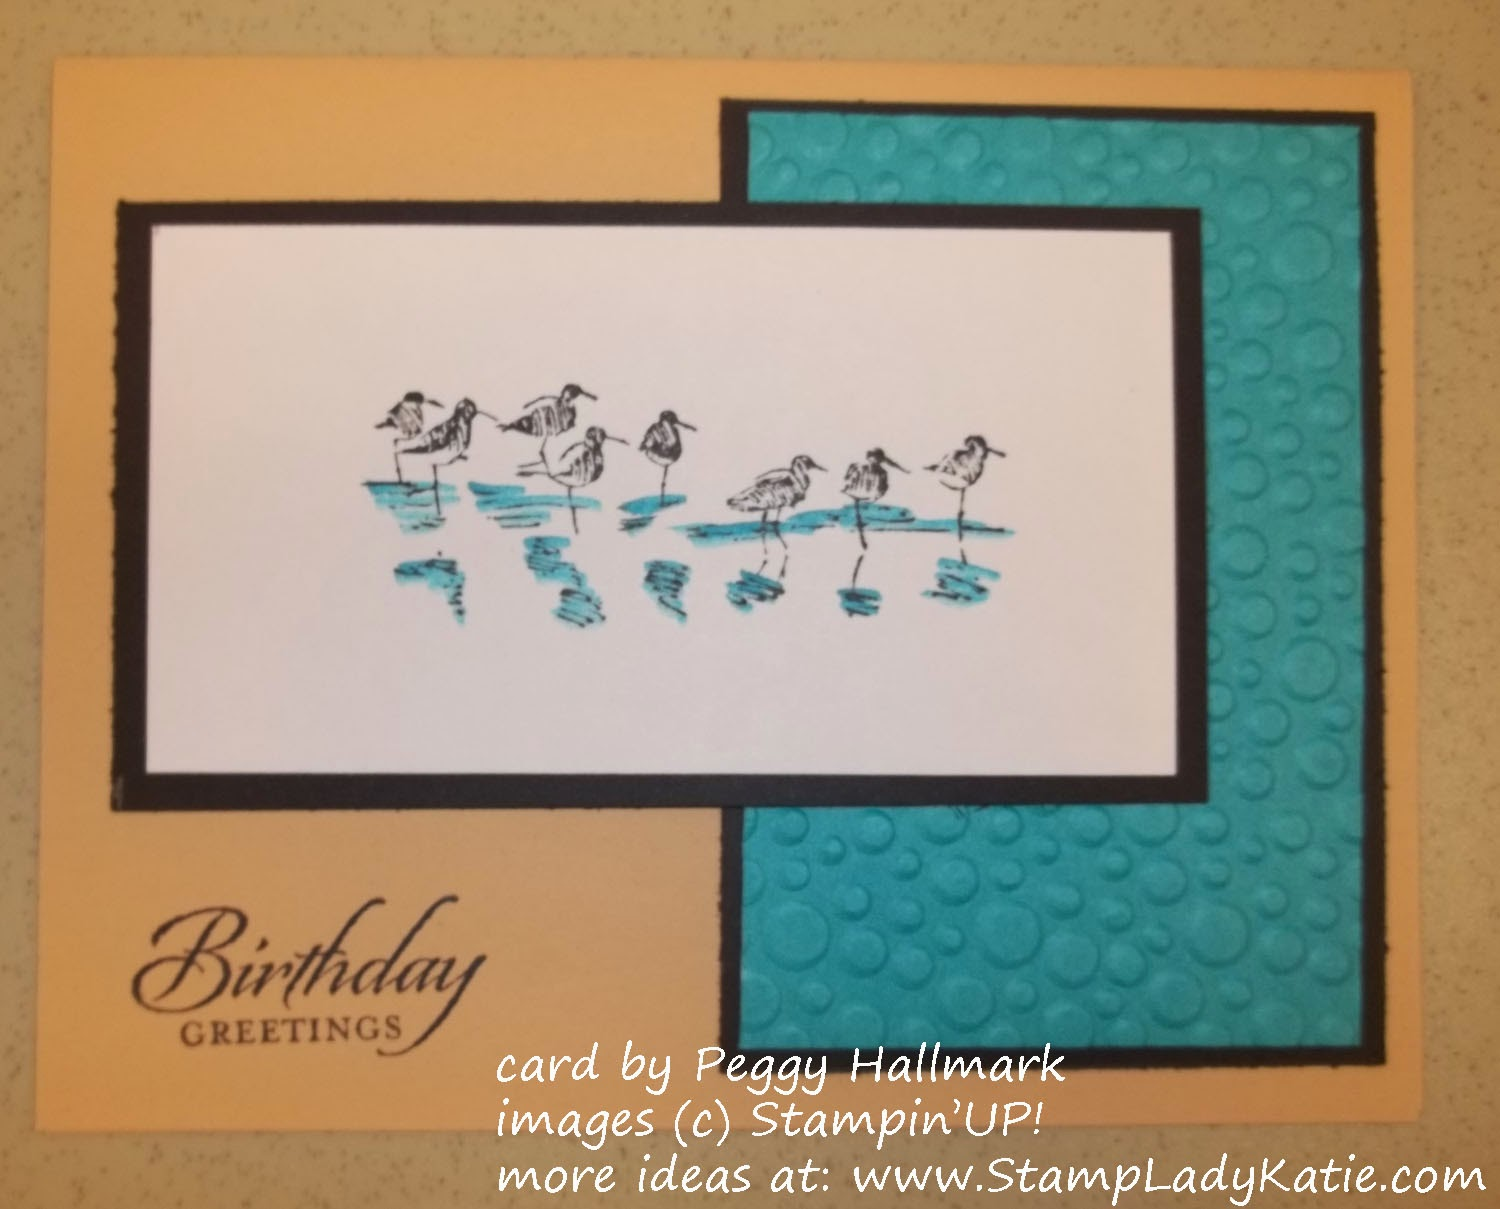 Card made with Stampin'UP!'s Wetlands stamp set.